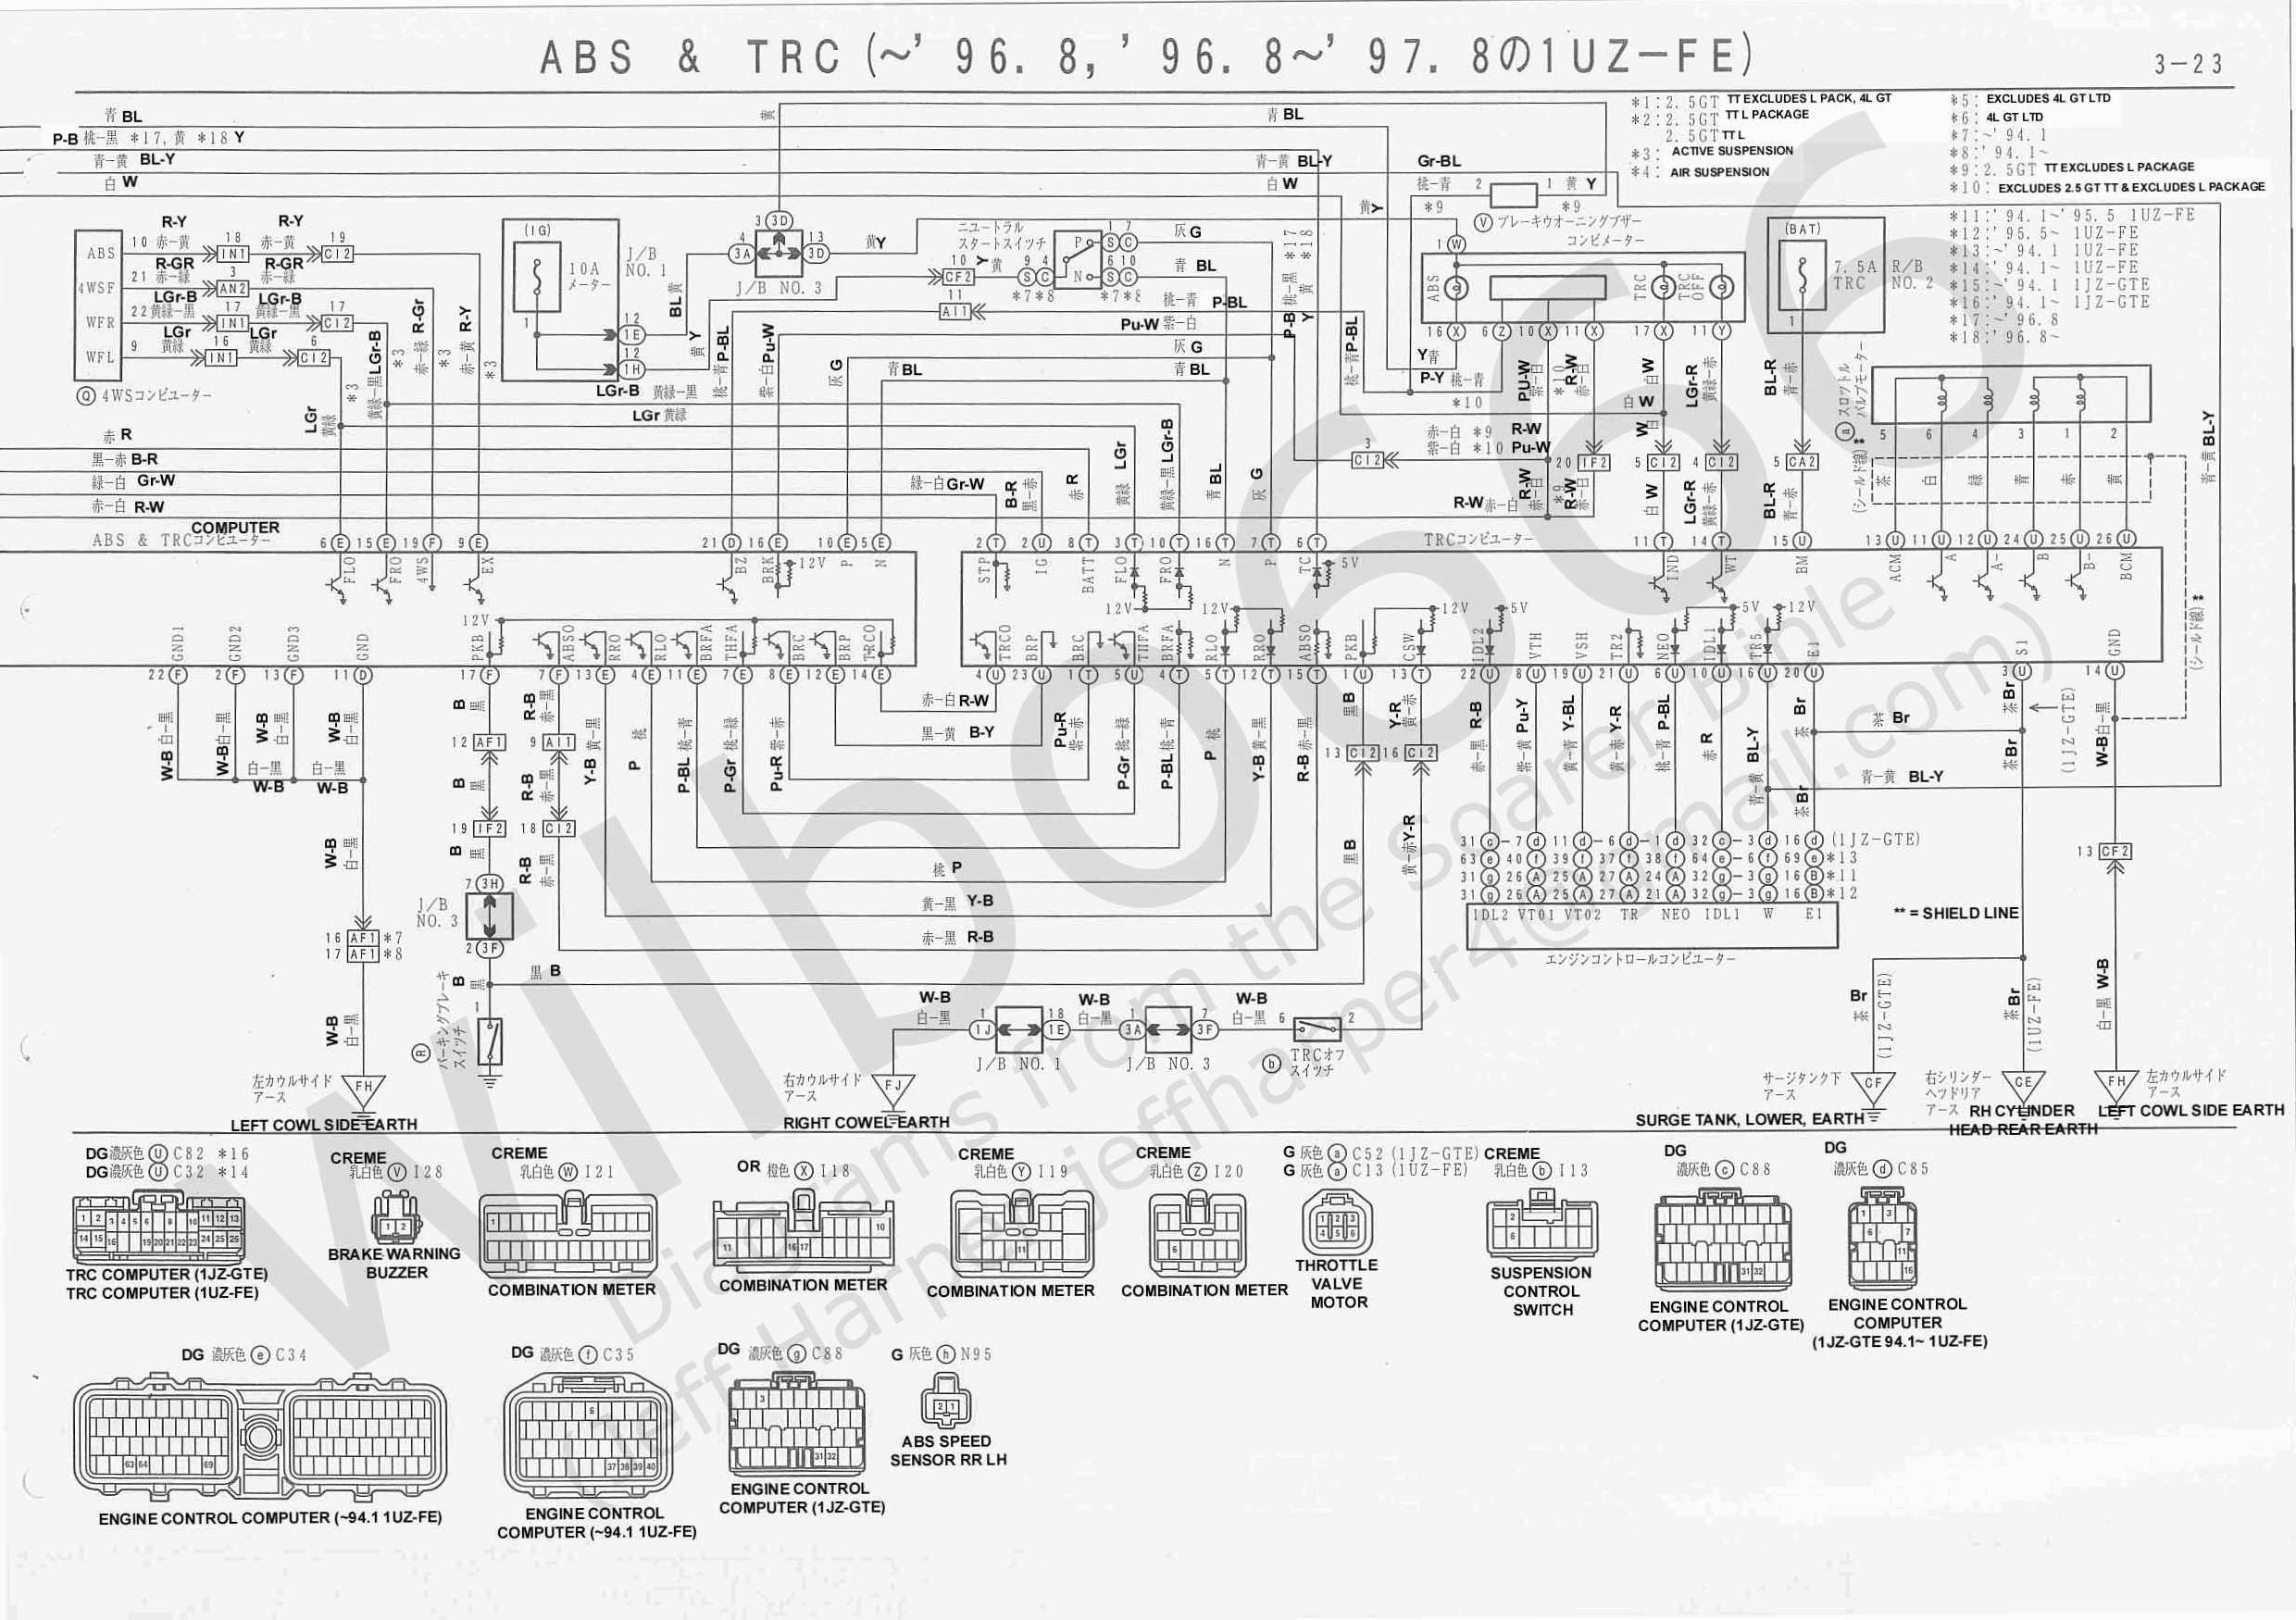 Wiring Diagram Freightliner Cascadia Wiring Diagrams 1997 Bmw Wiring